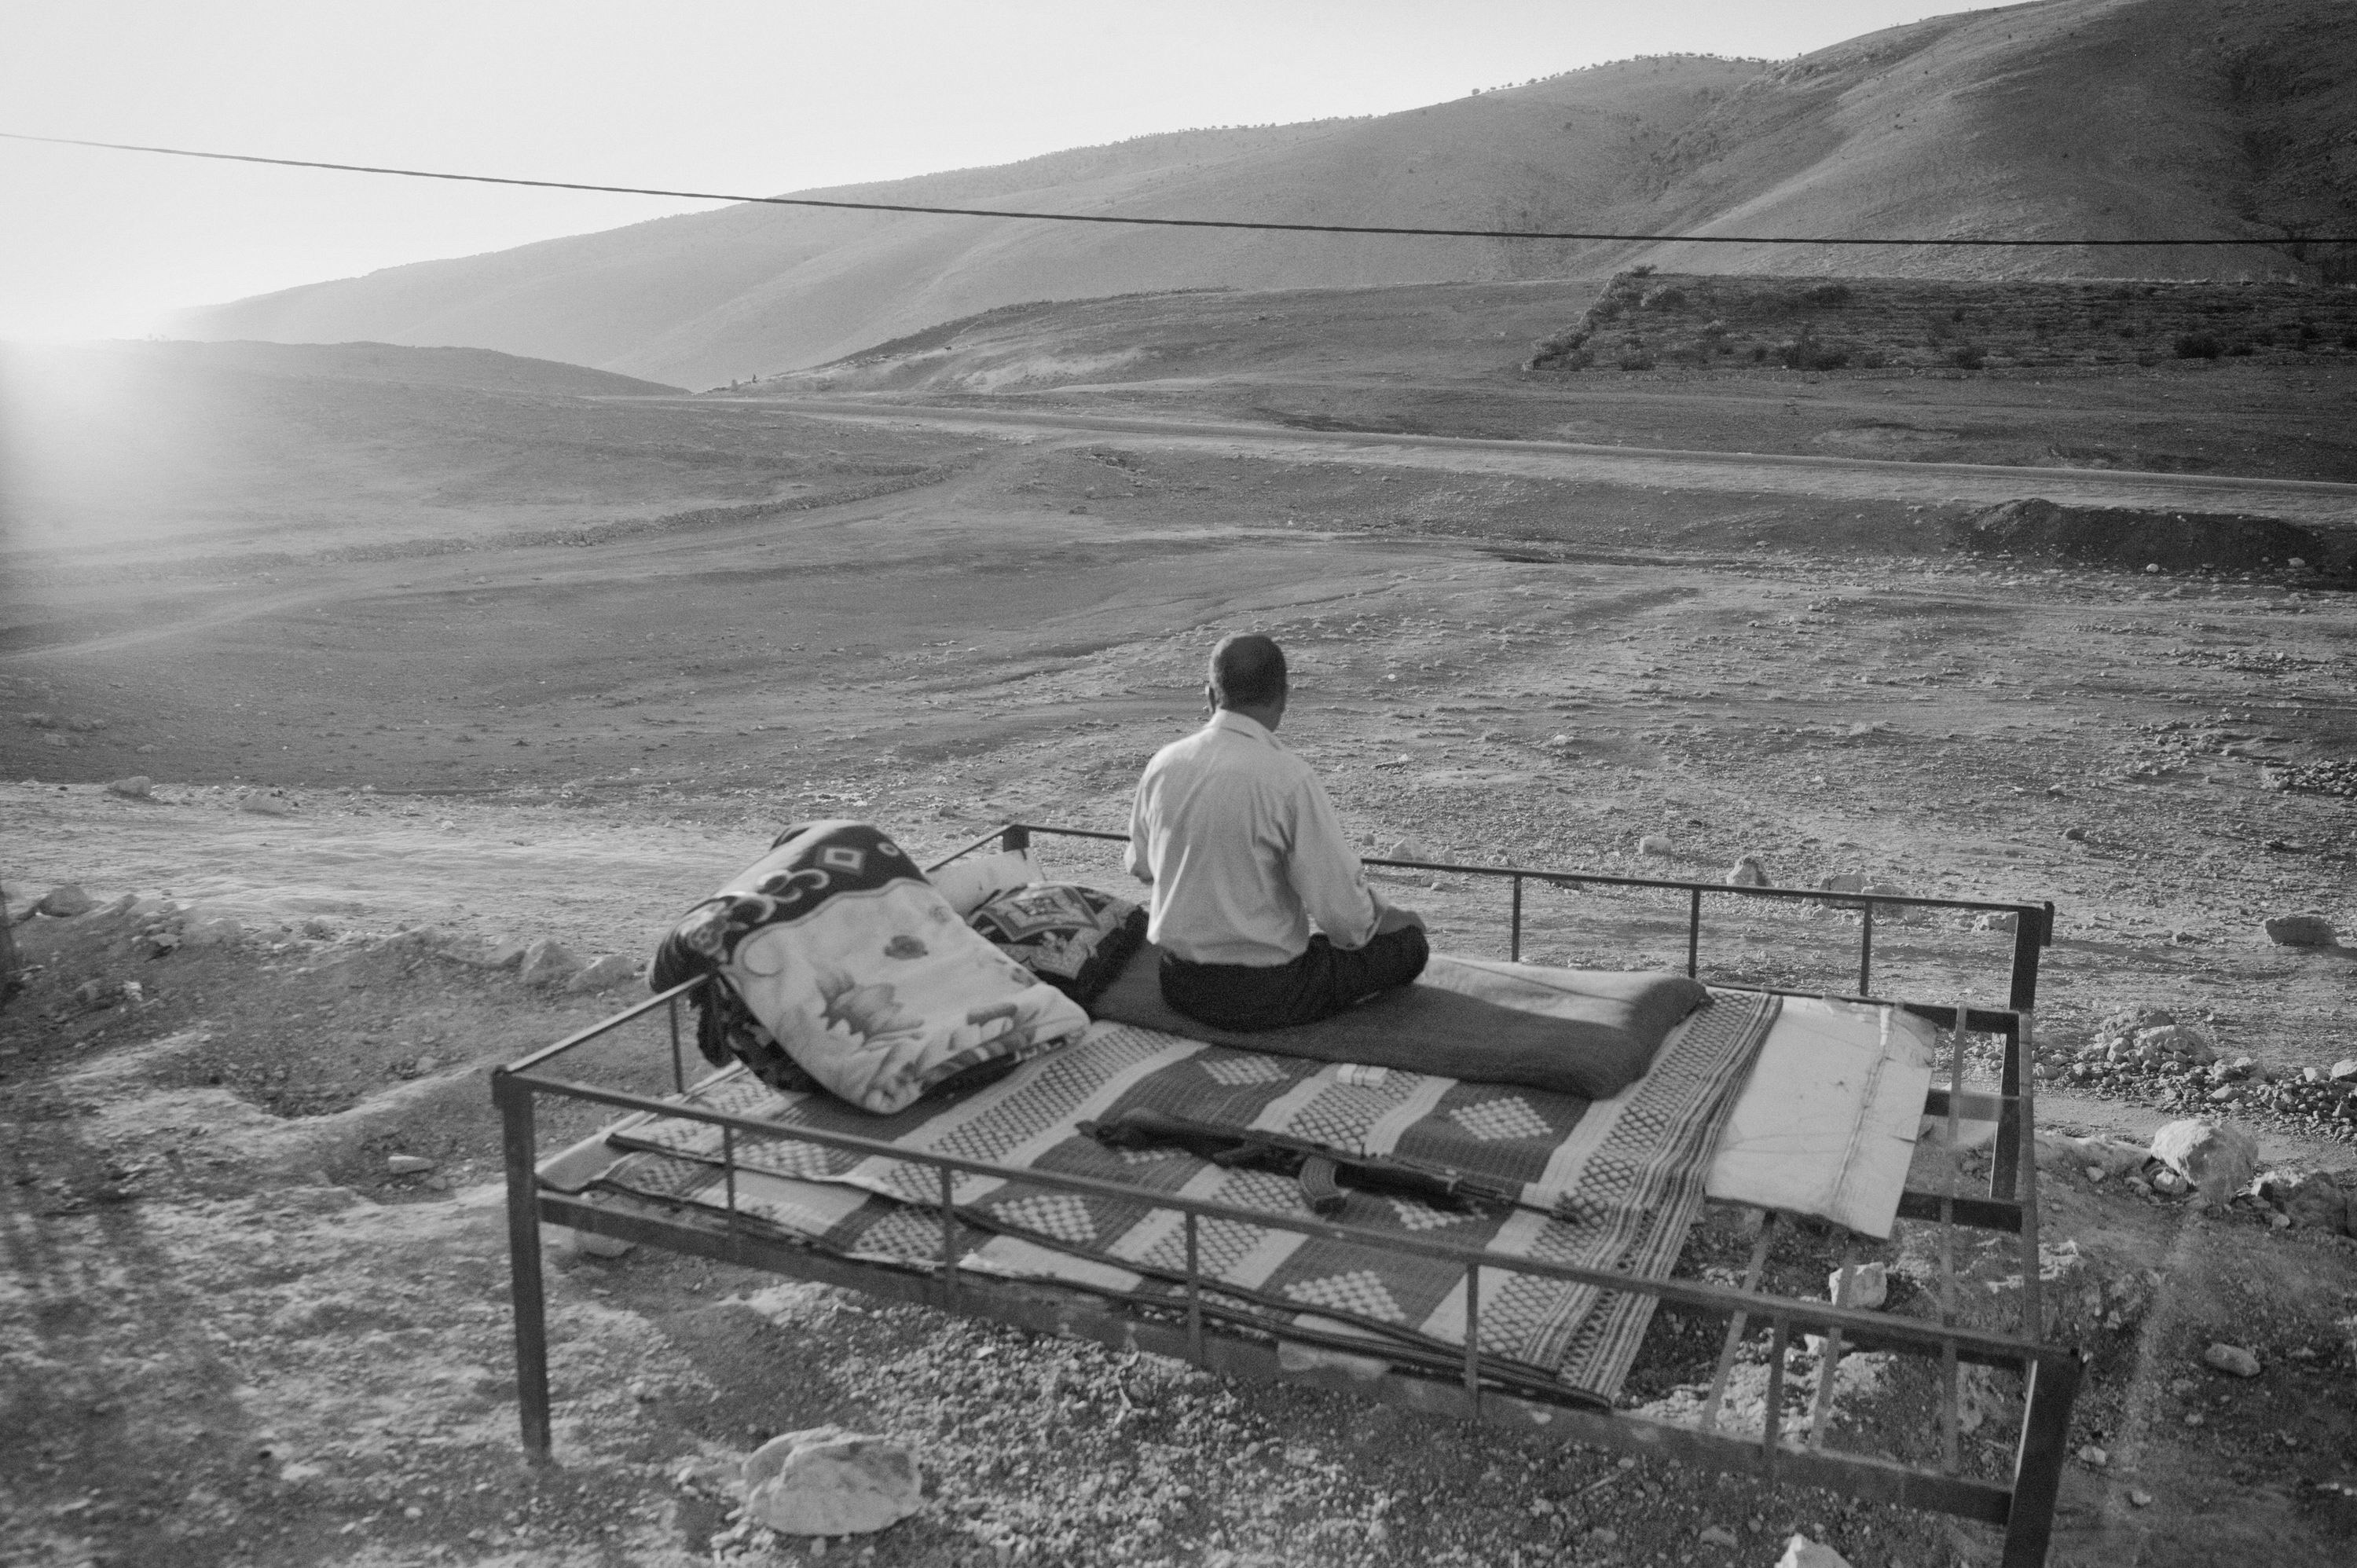 Iraq september 17, 2014, Mount Sinjar, A local Yazidi wakes up with his rifle next to him. Foto Eddy van Wessel